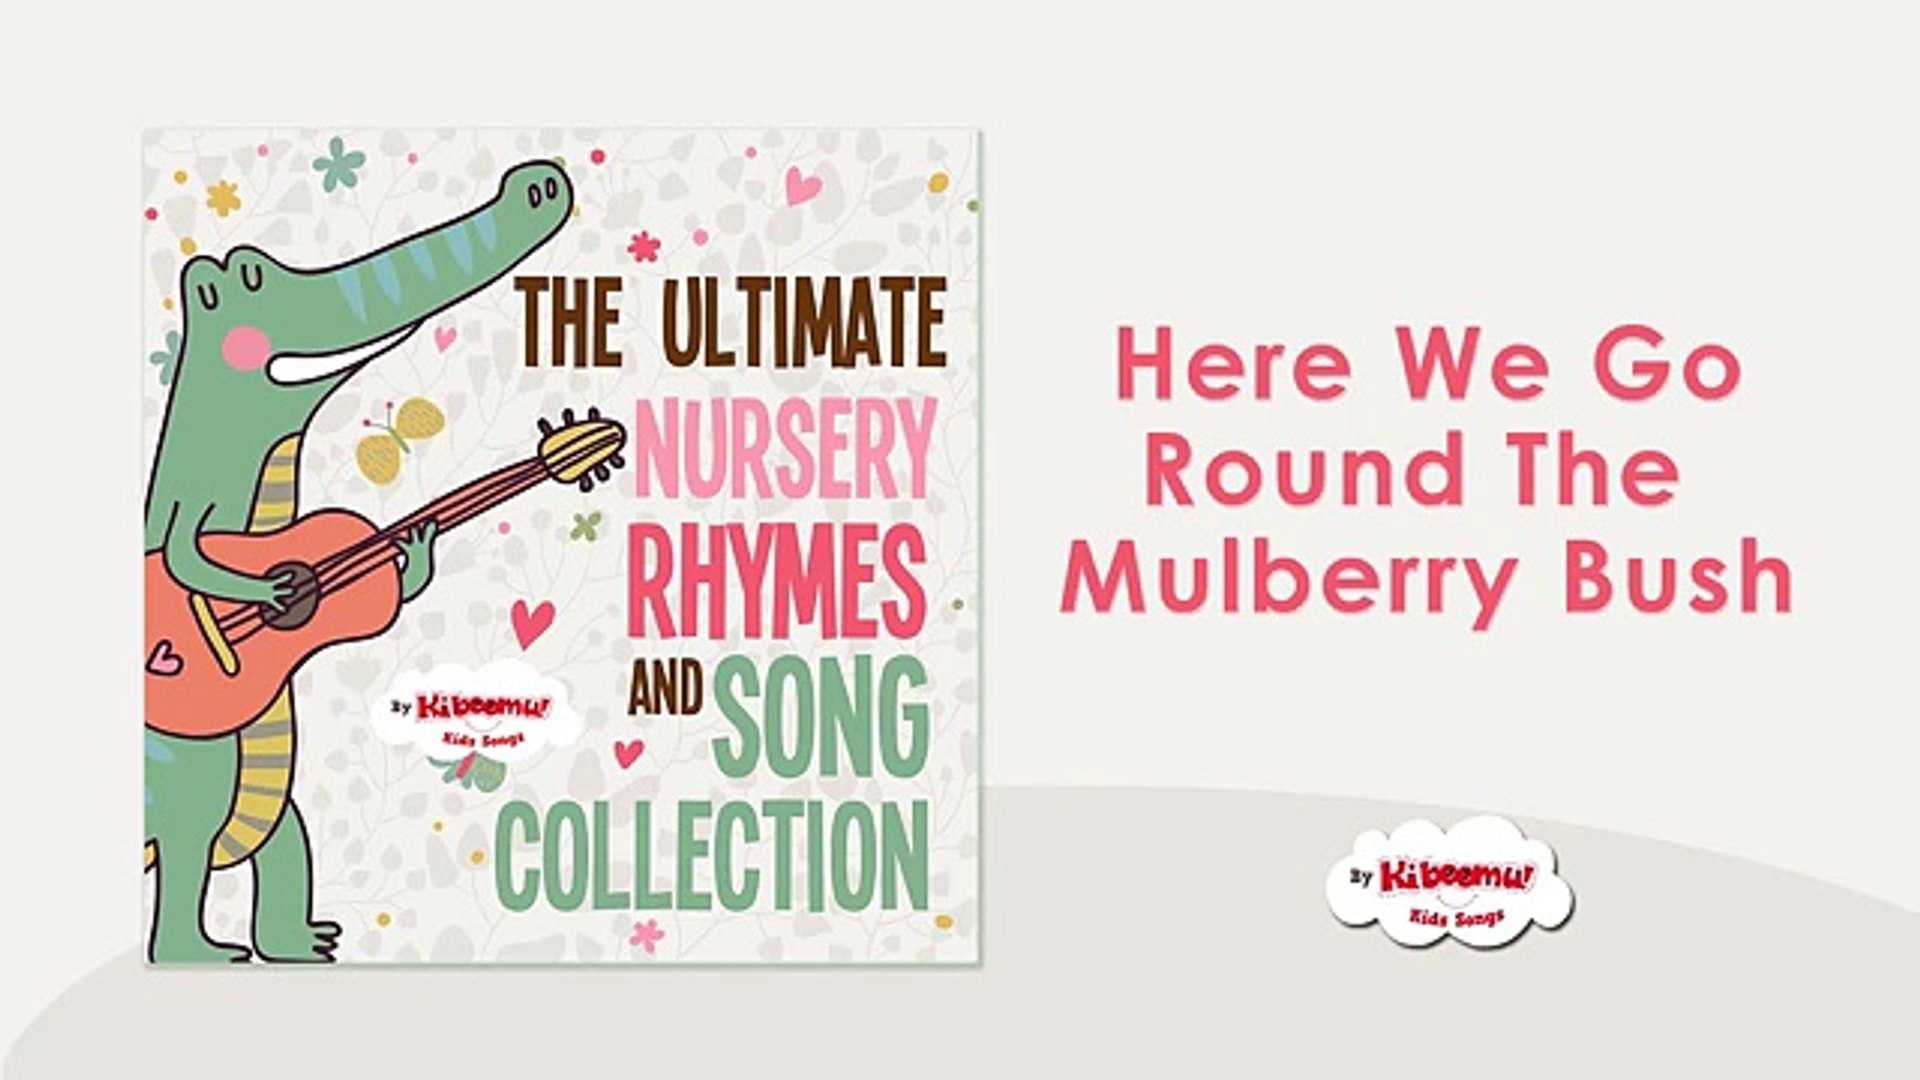 The Ultimate Nursery Rhymes and Song Collection | Nursery Rhymes for Kids